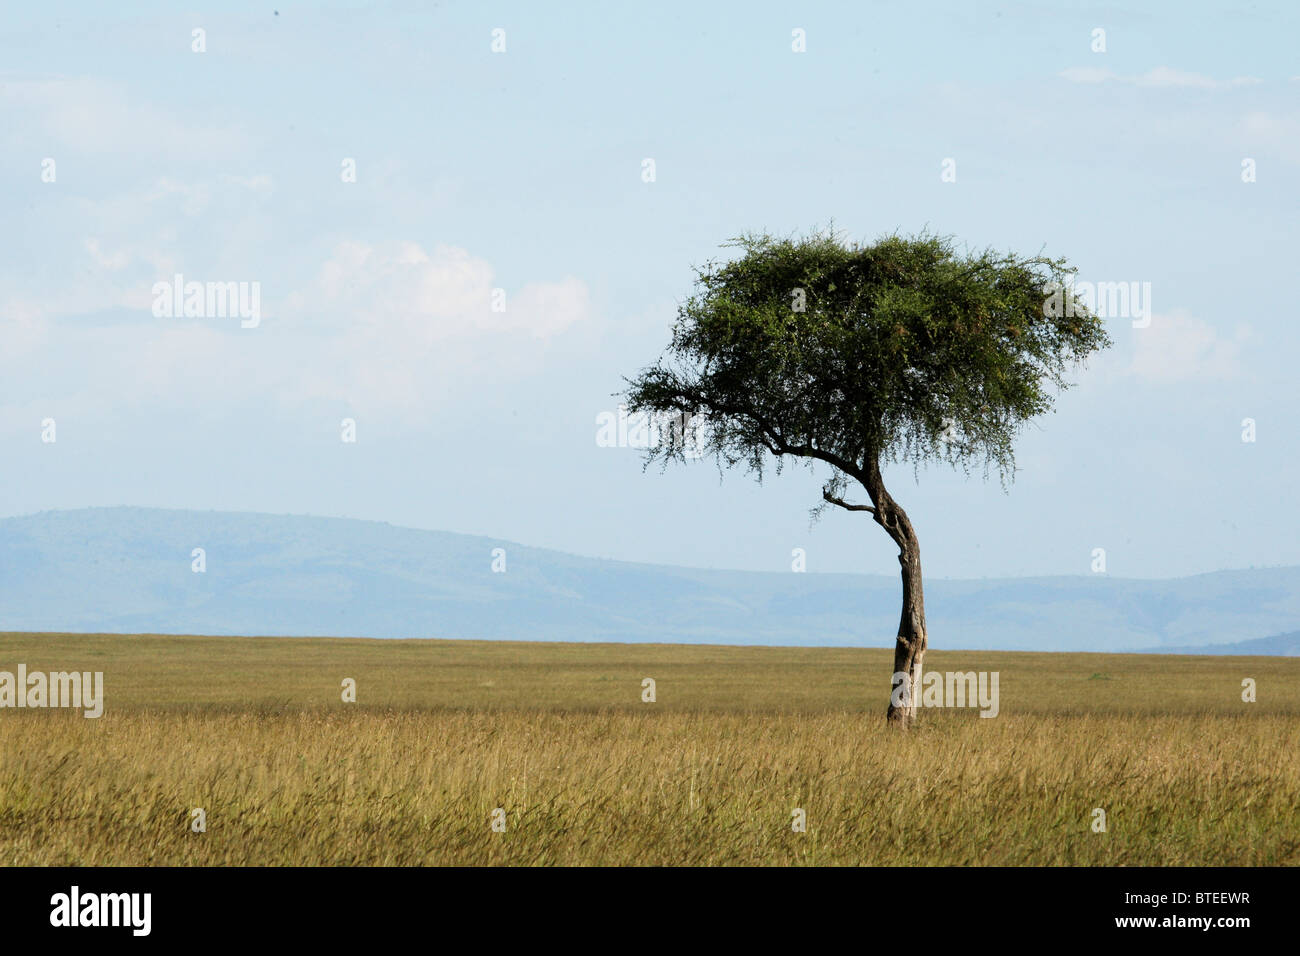 Scenic view of  a vast grassland with a lone tree and mountains in the very distance - Stock Image